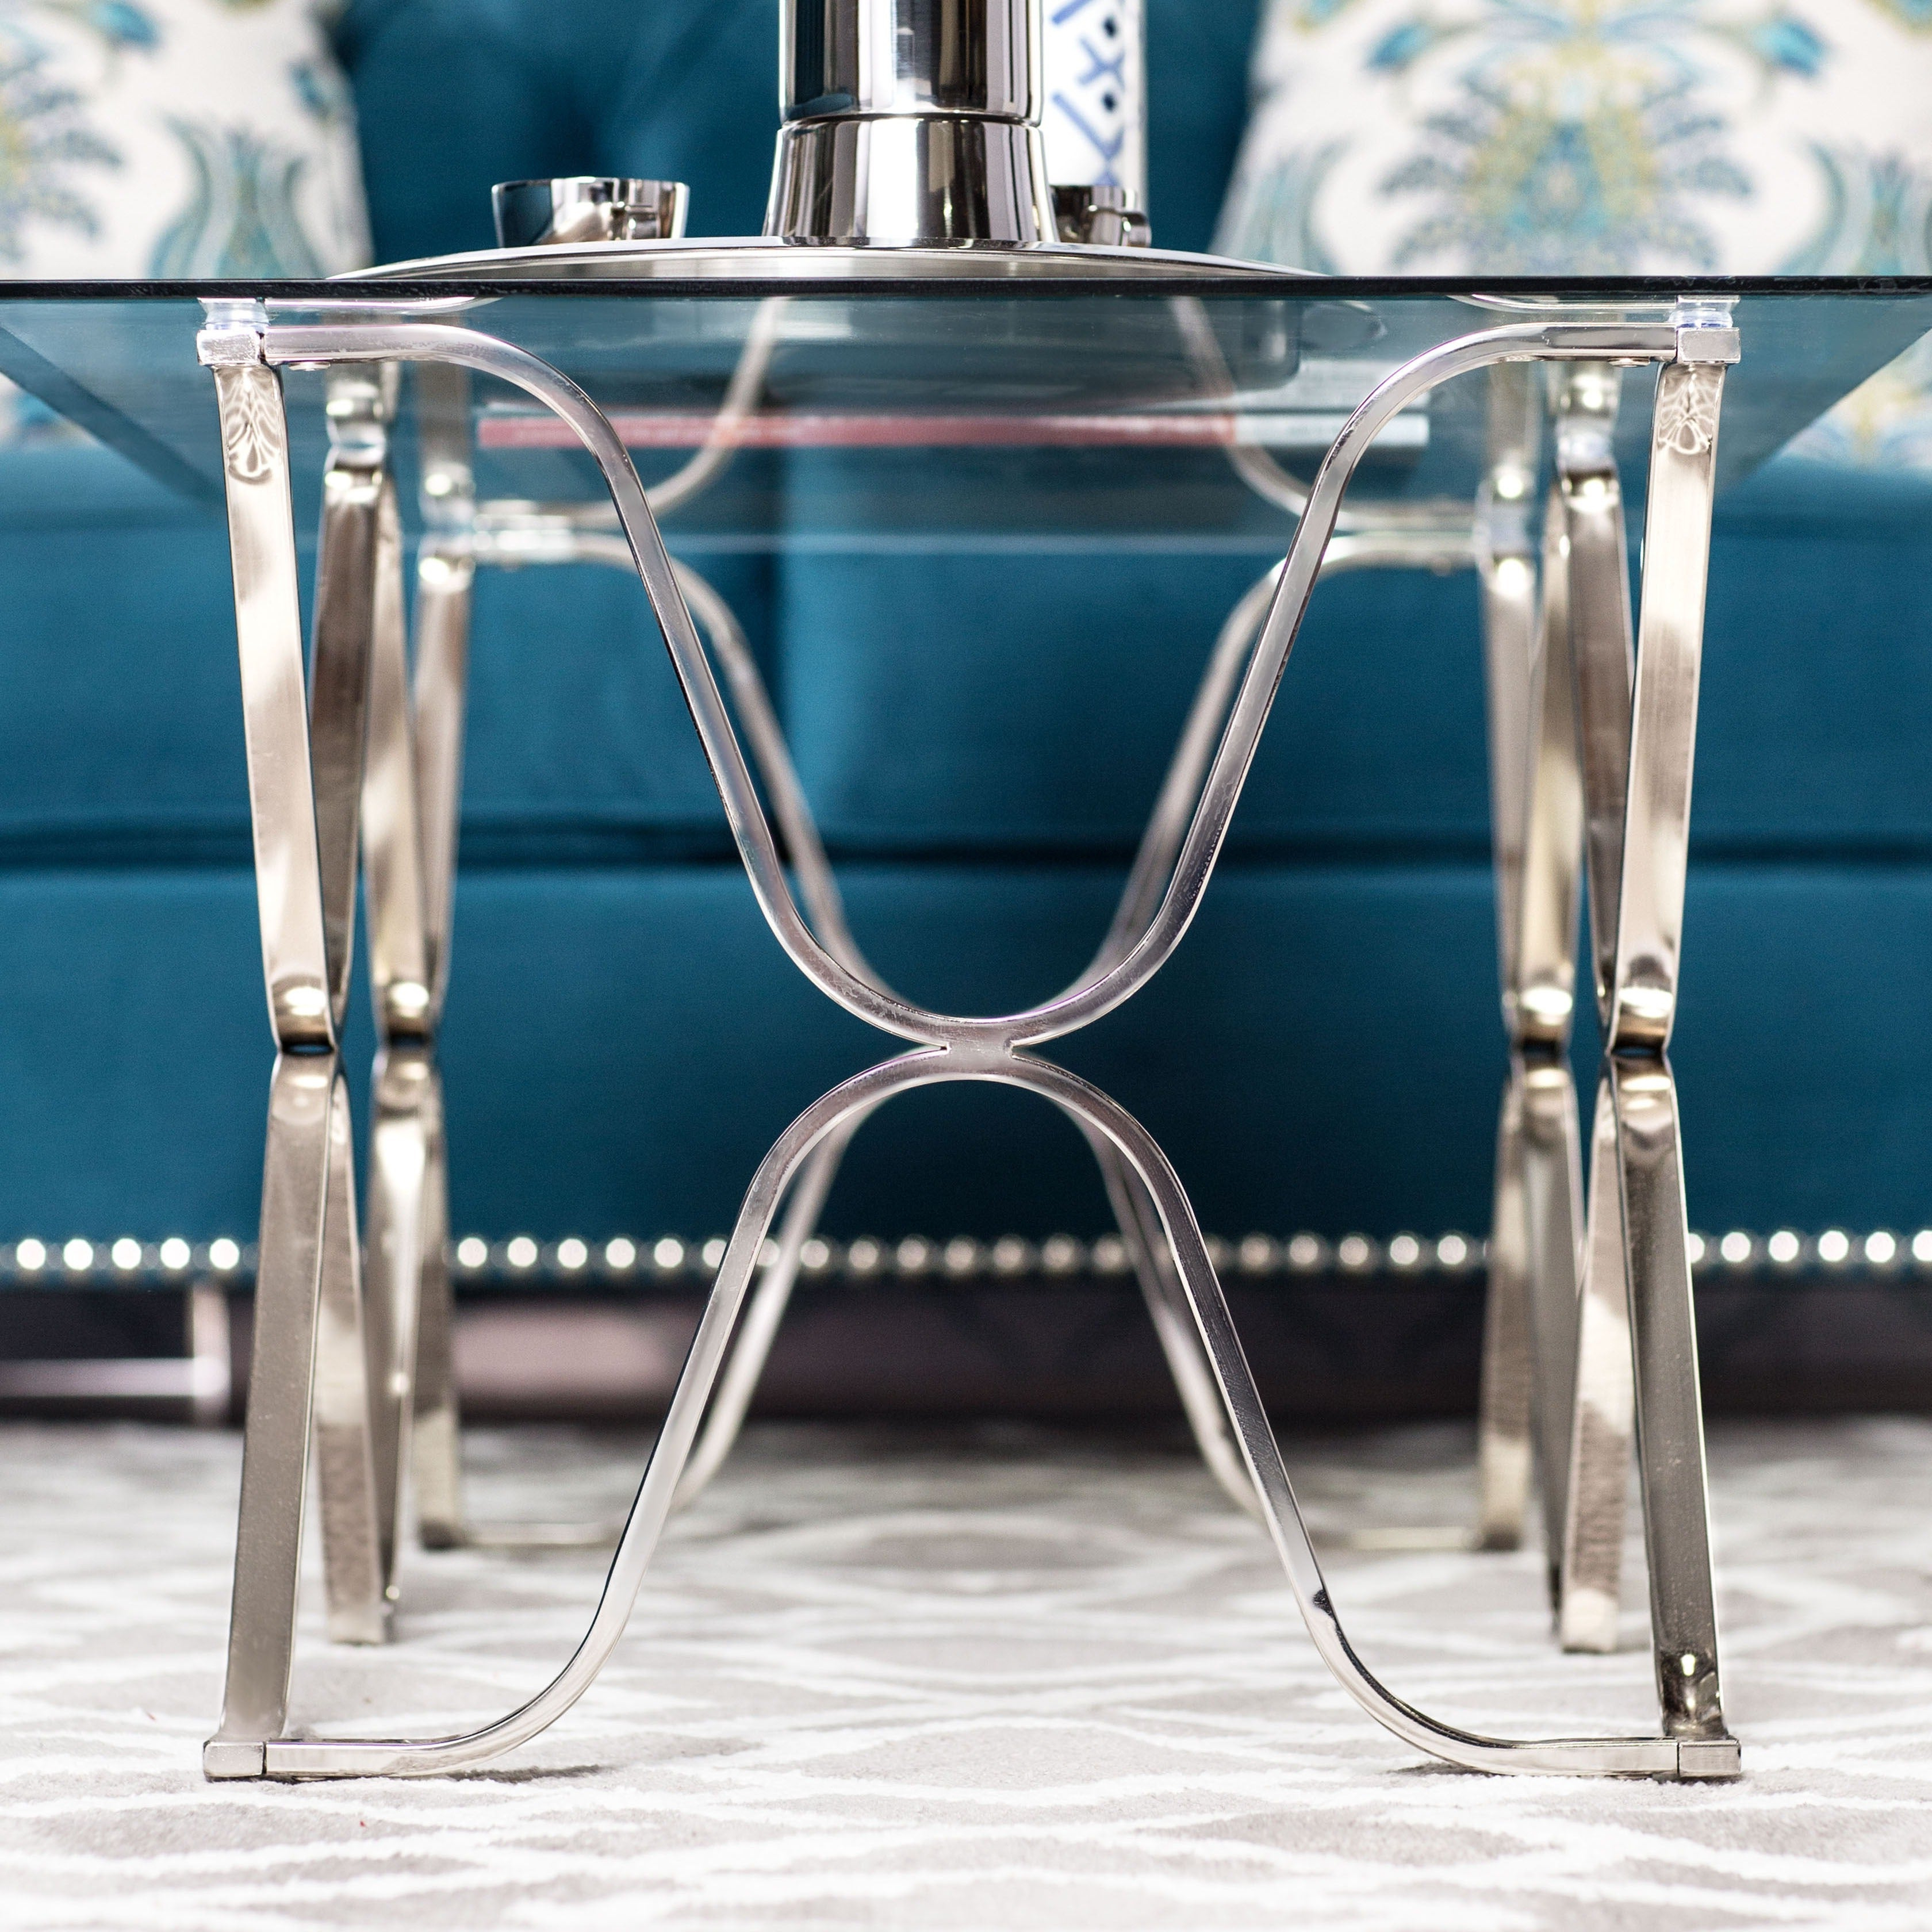 2019 Furniture Of America Tellarie Contemporary Chrome Coffee Tables Intended For Furniture Of America Tellarie Contemporary Chrome Coffee Table – Silver (Gallery 4 of 20)